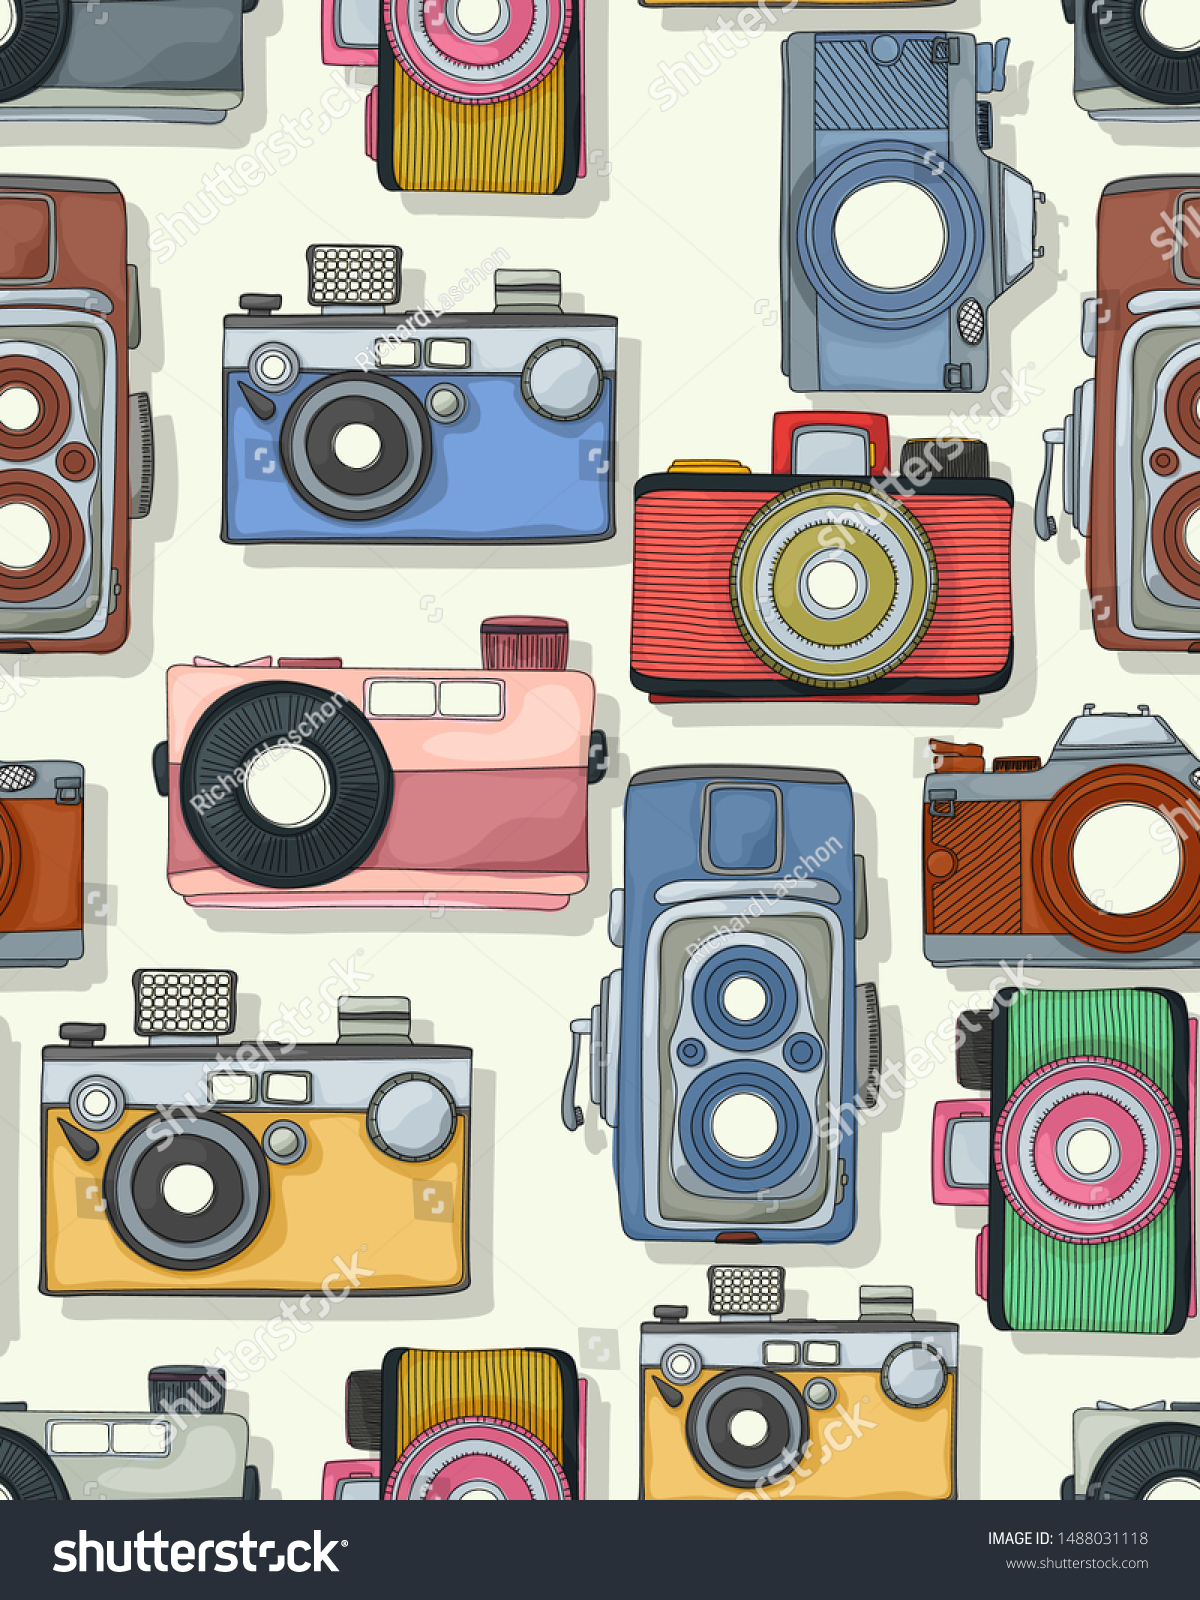 Retro style photograhic camera pattern in colors